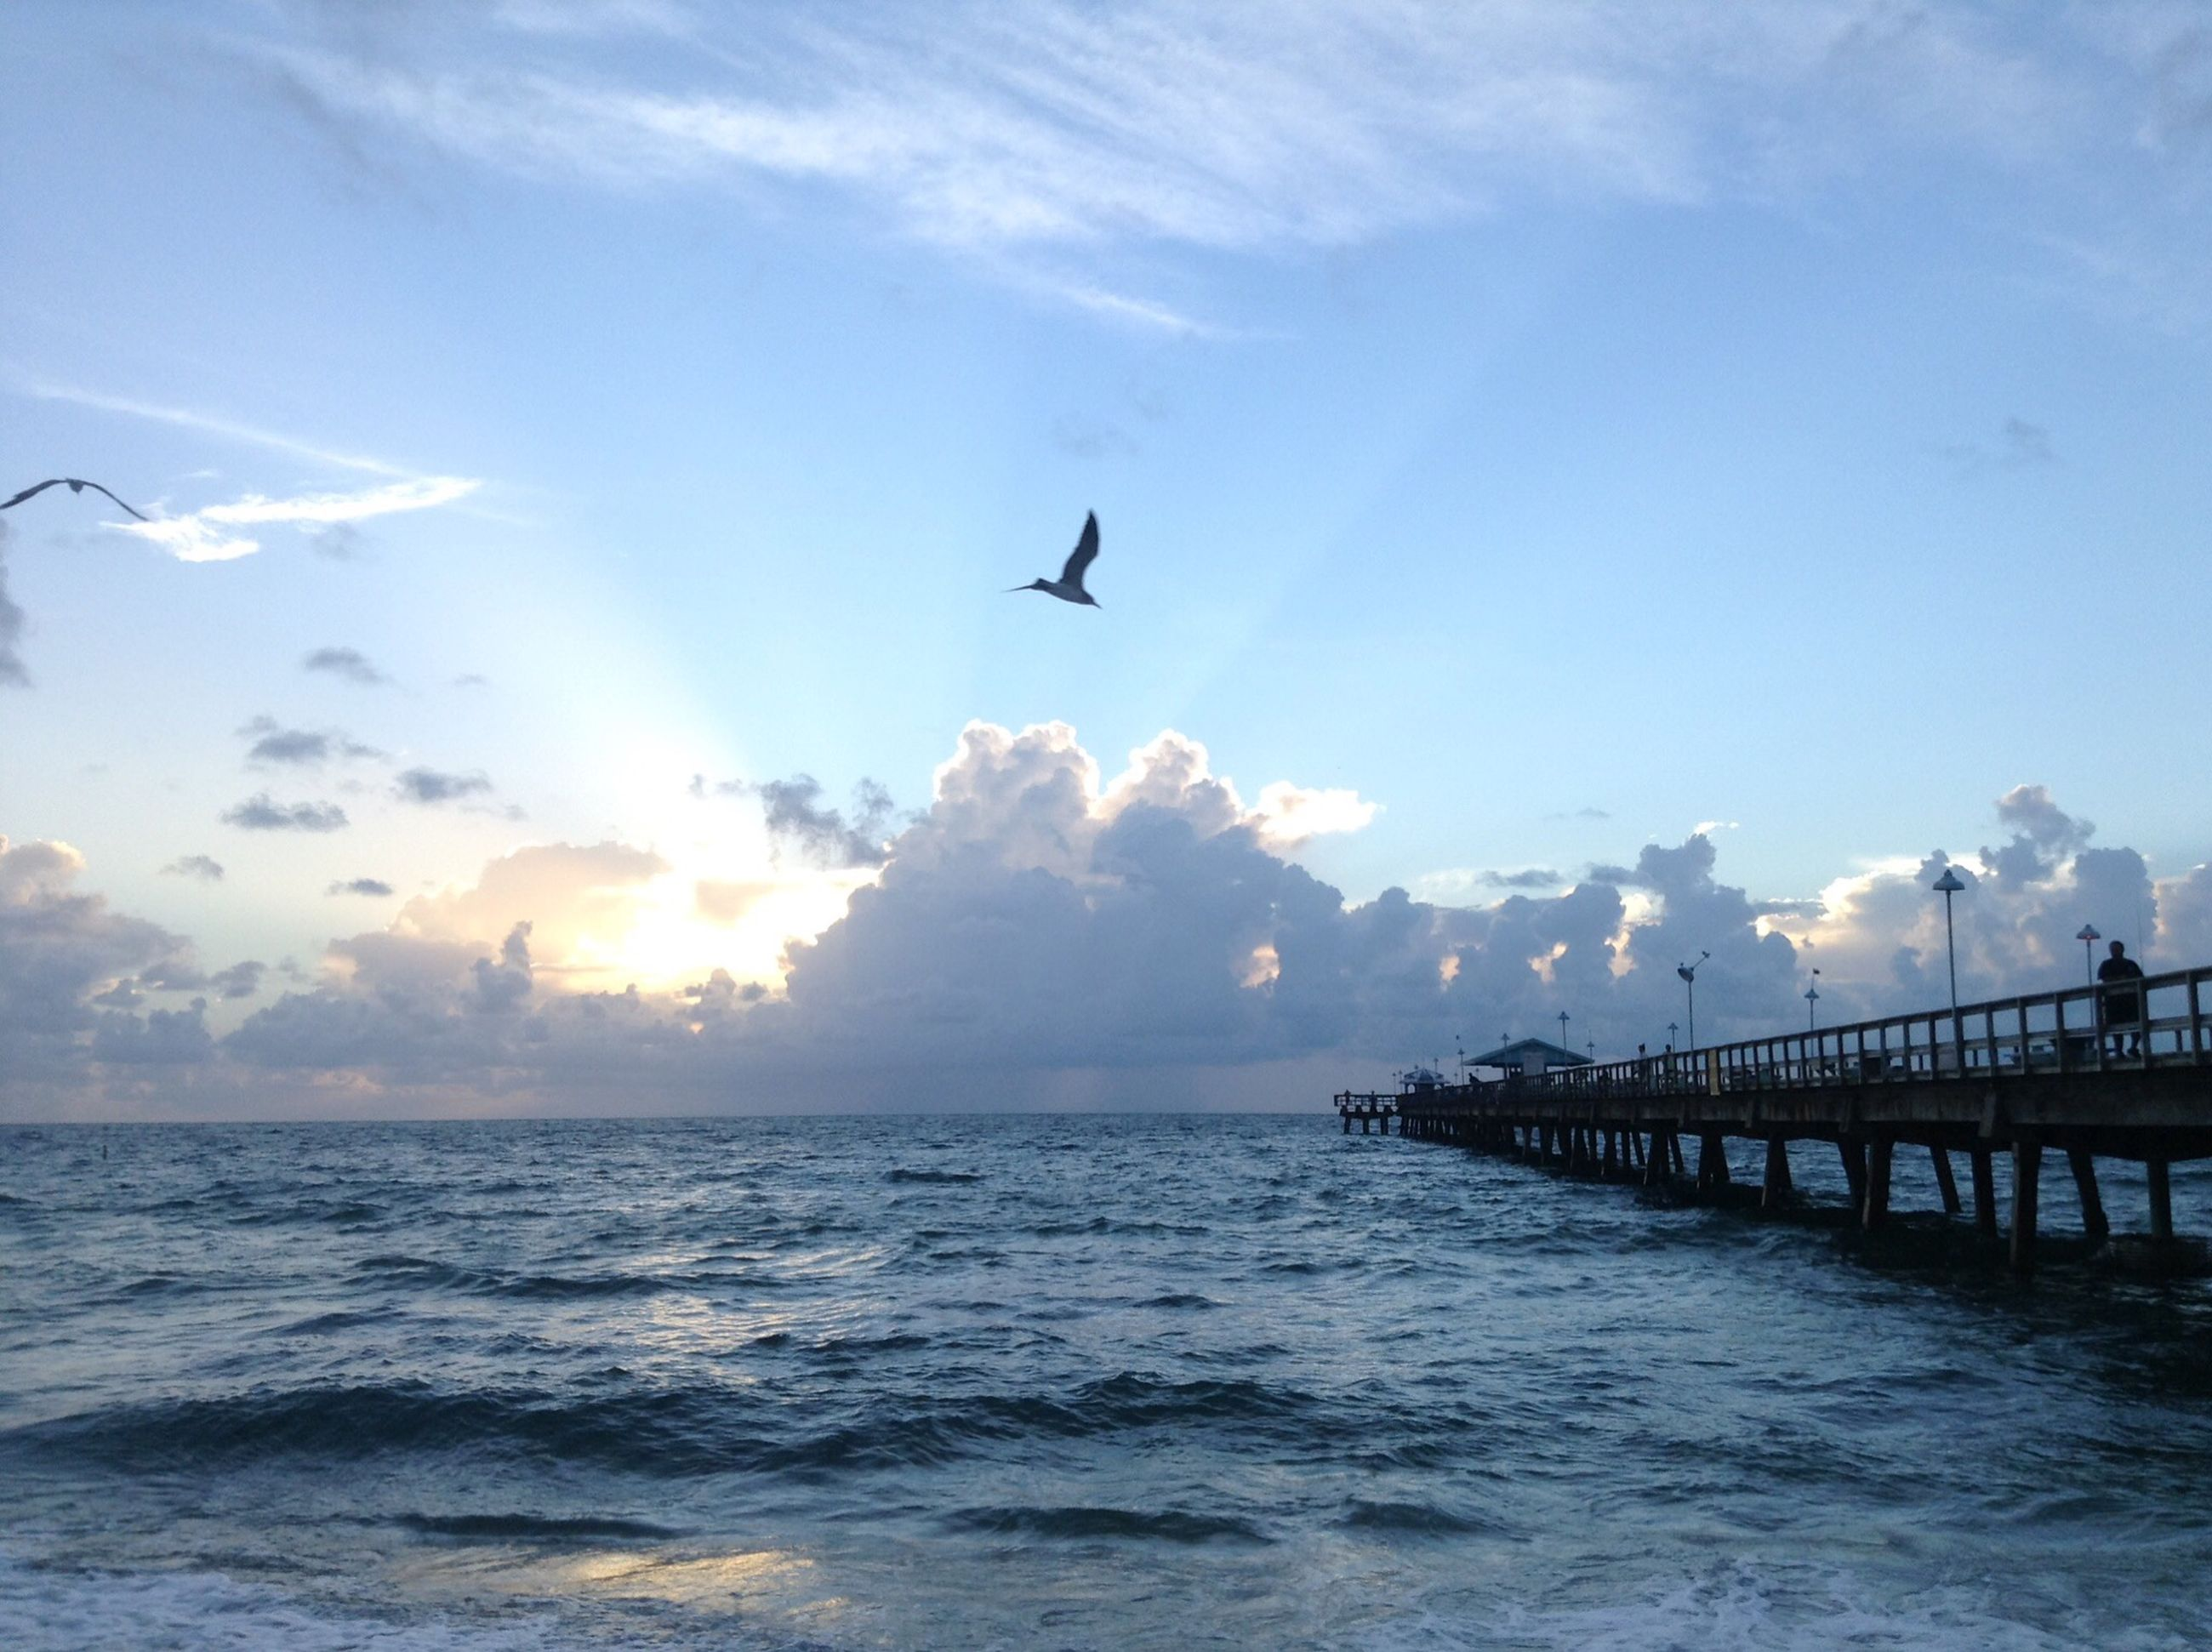 sea, water, bird, sky, flying, horizon over water, animal themes, scenics, waterfront, beauty in nature, wildlife, sunset, one animal, built structure, sun, nature, cloud - sky, tranquility, animals in the wild, tranquil scene